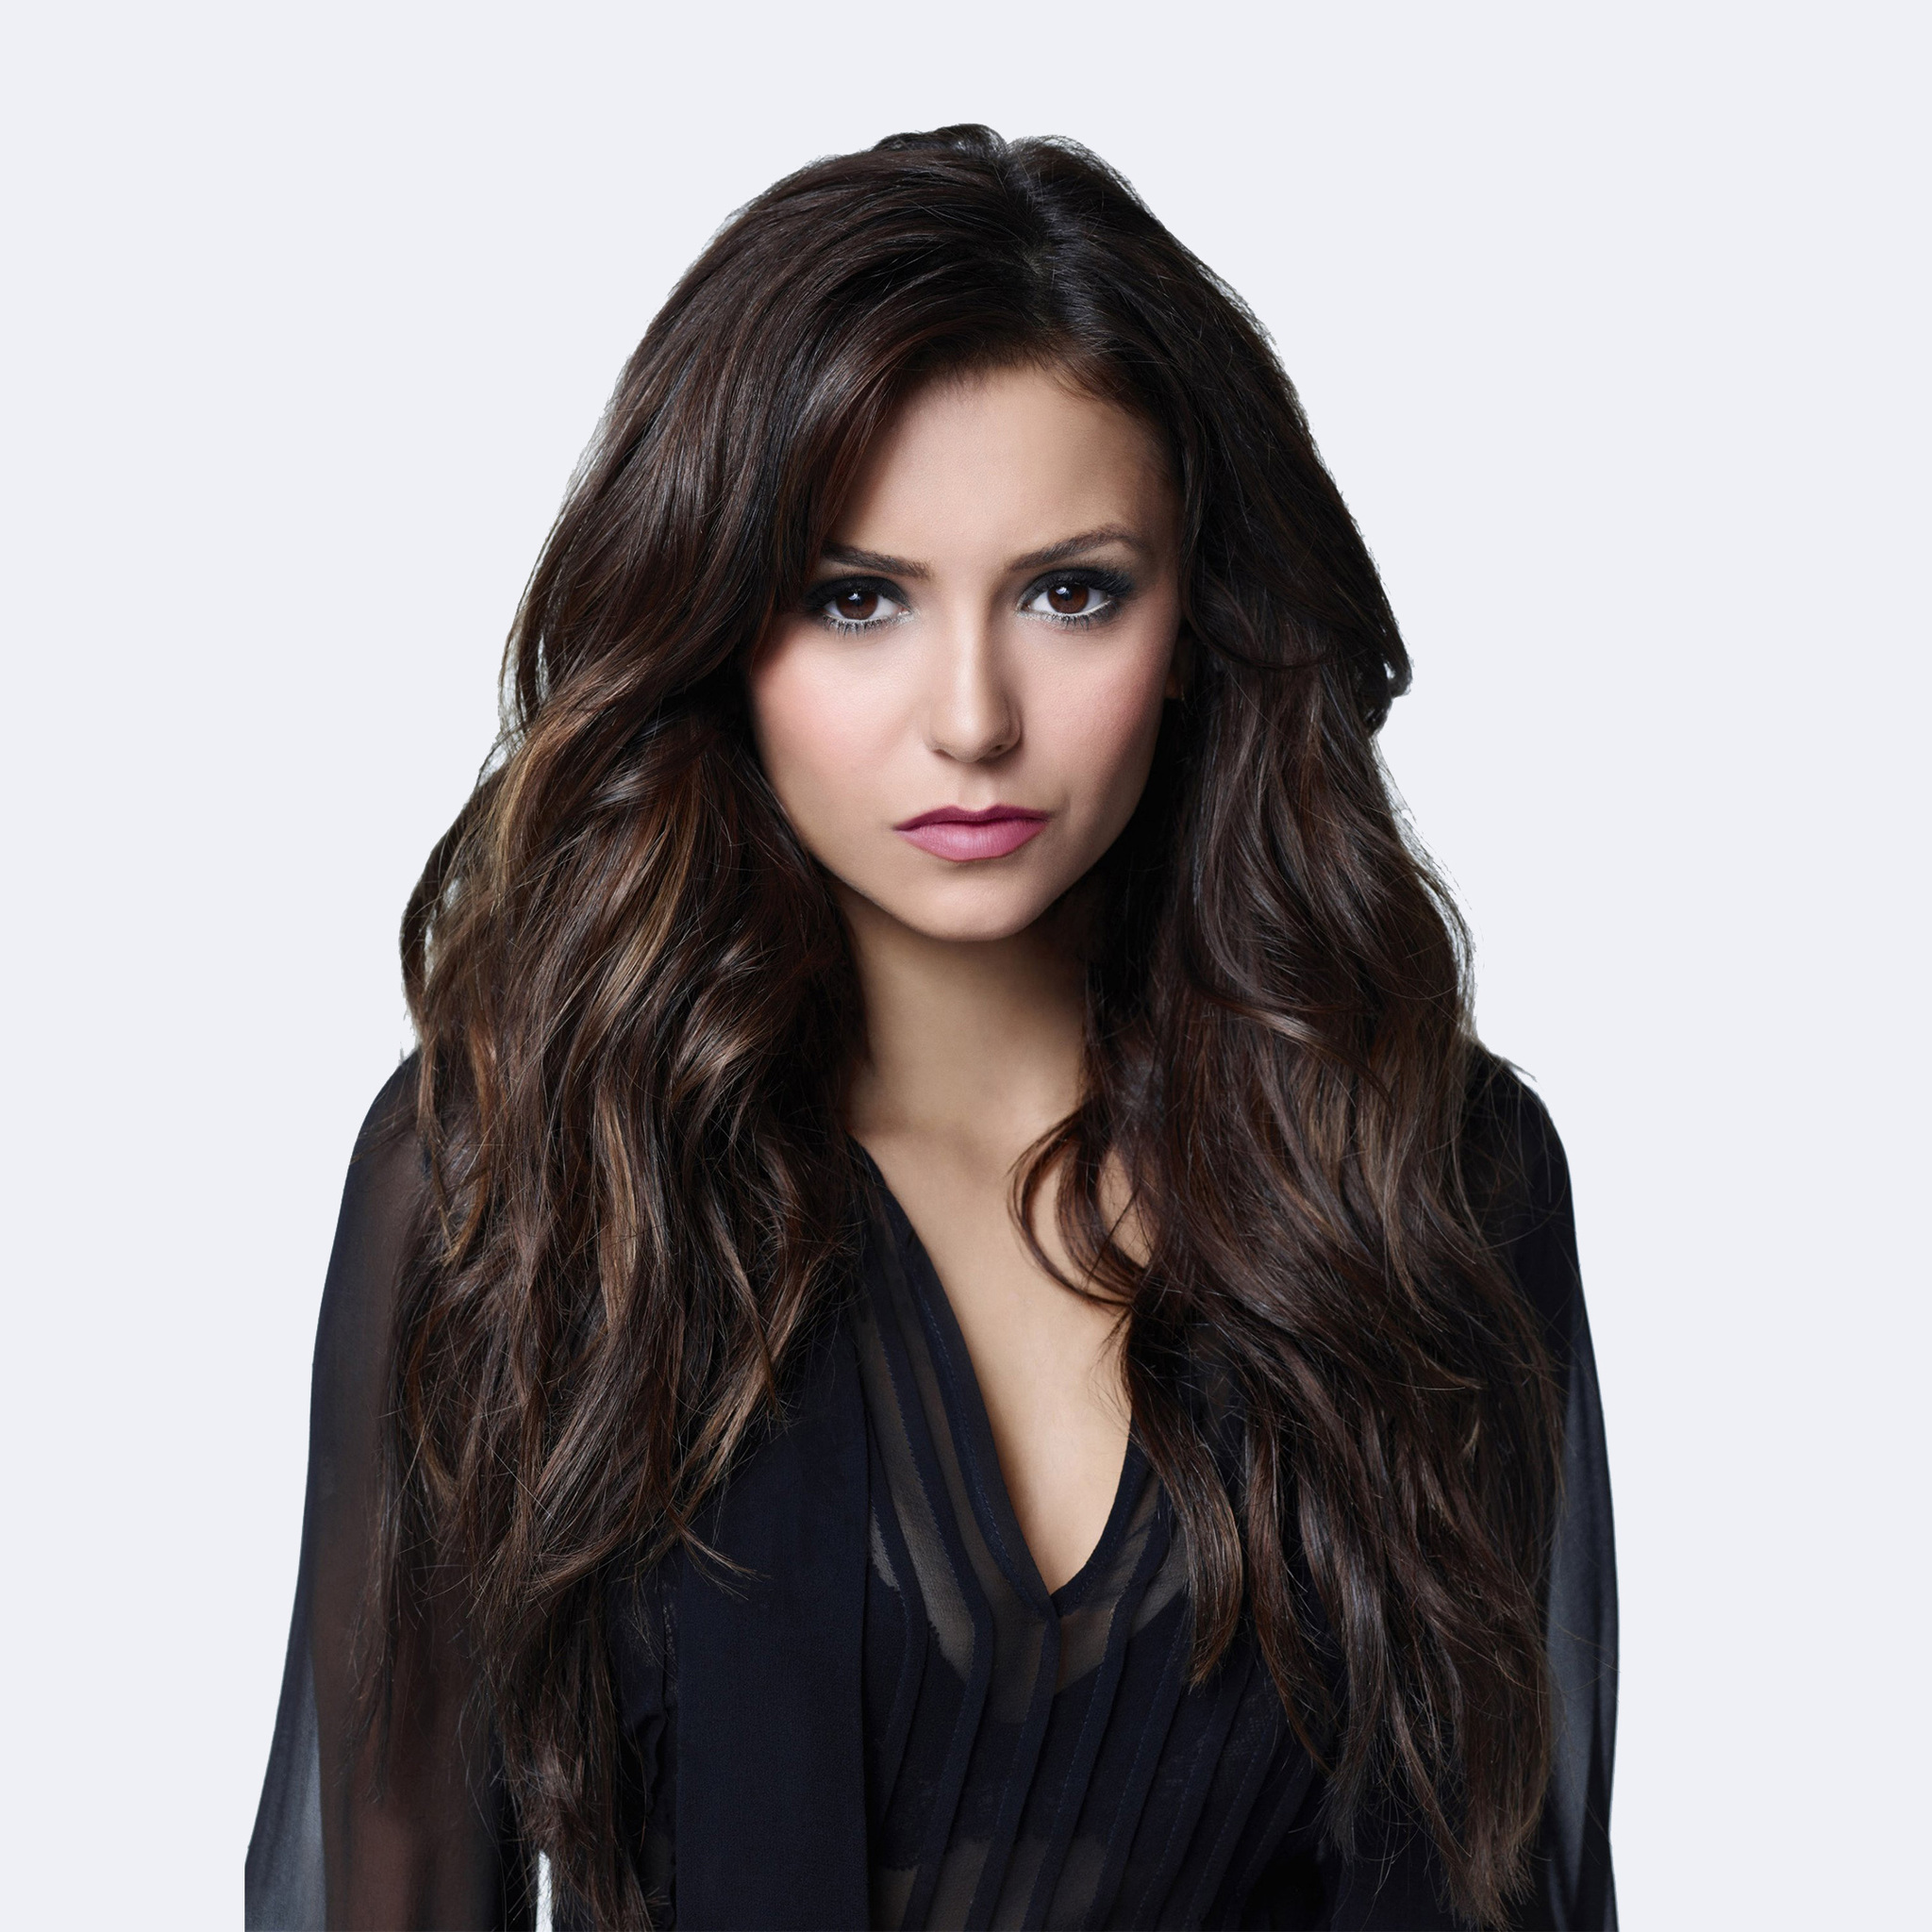 Nina Dobrev Wallpaper: 2048x2048 Nina Dobrev 4k 2018 Ipad Air HD 4k Wallpapers